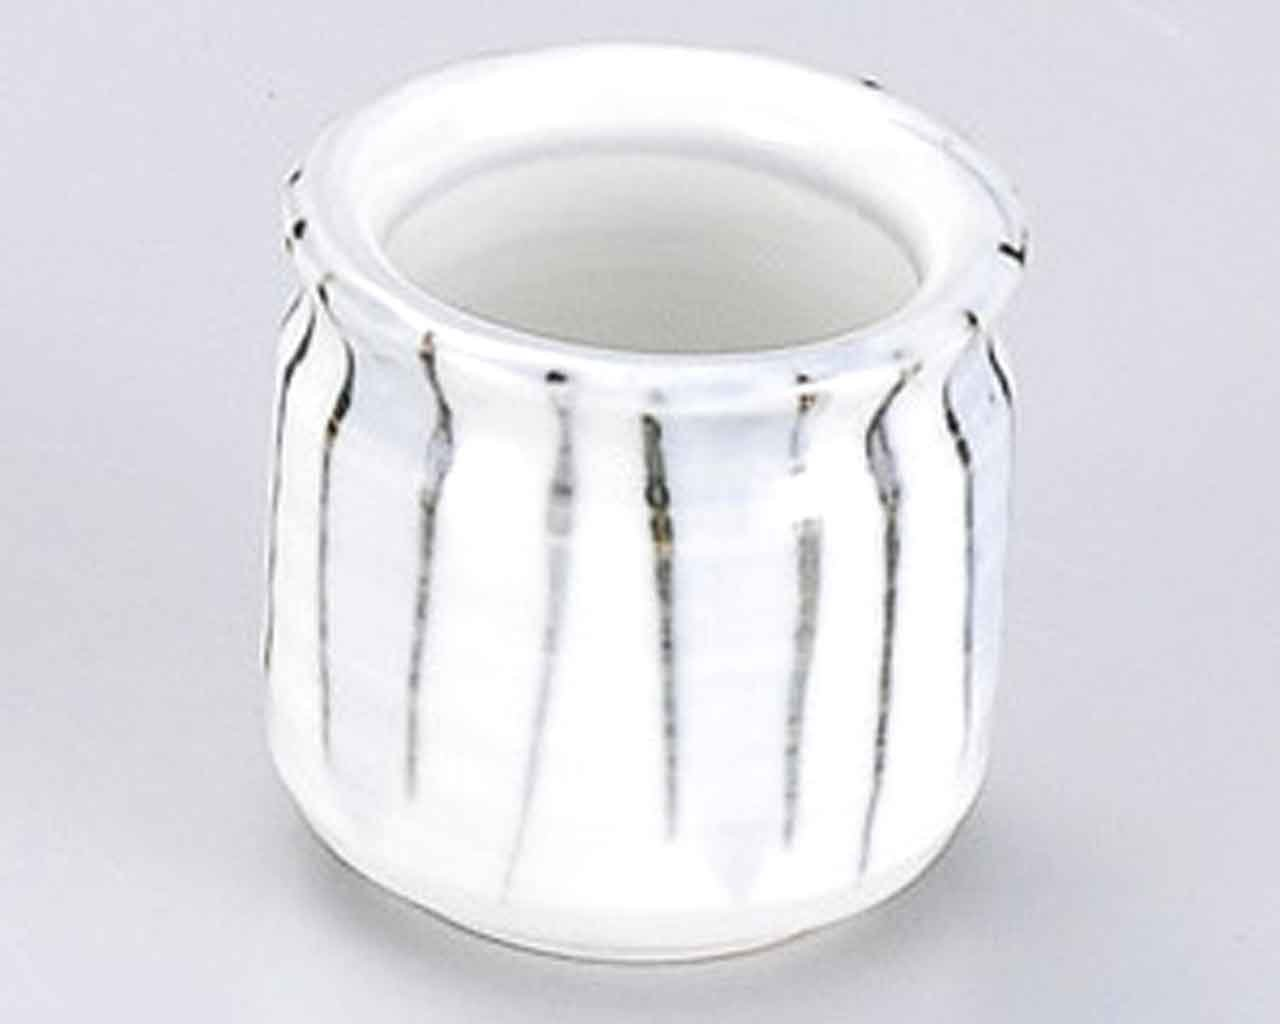 Kesho Tokusa 2.1inch Set of 5 Toothpick holders White porcelain Made in Japan